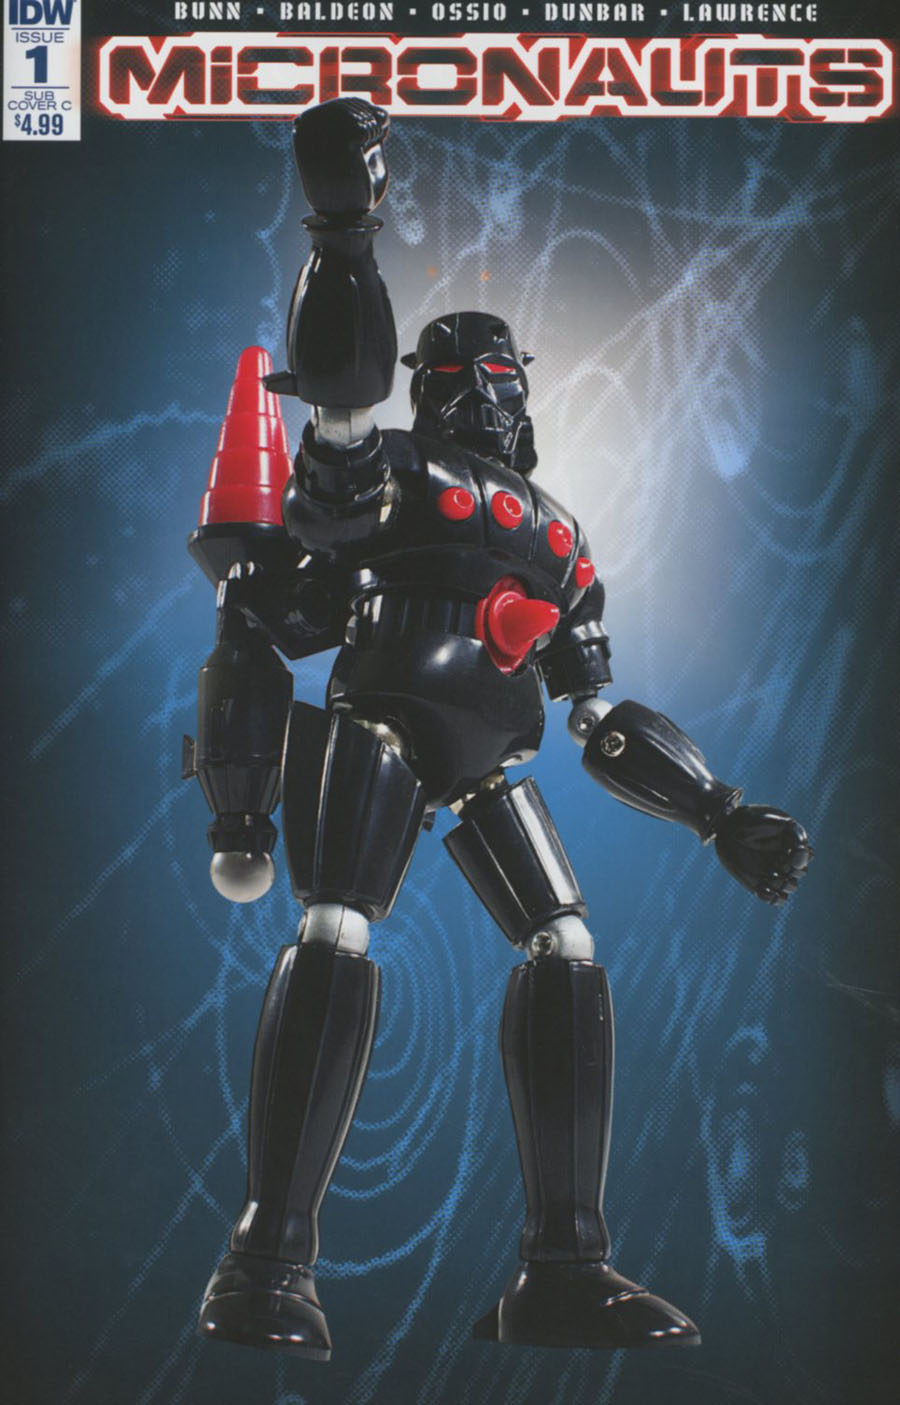 Micronauts Vol 5 #1 Cover D Variant Classic Action Figure Subscription Cover